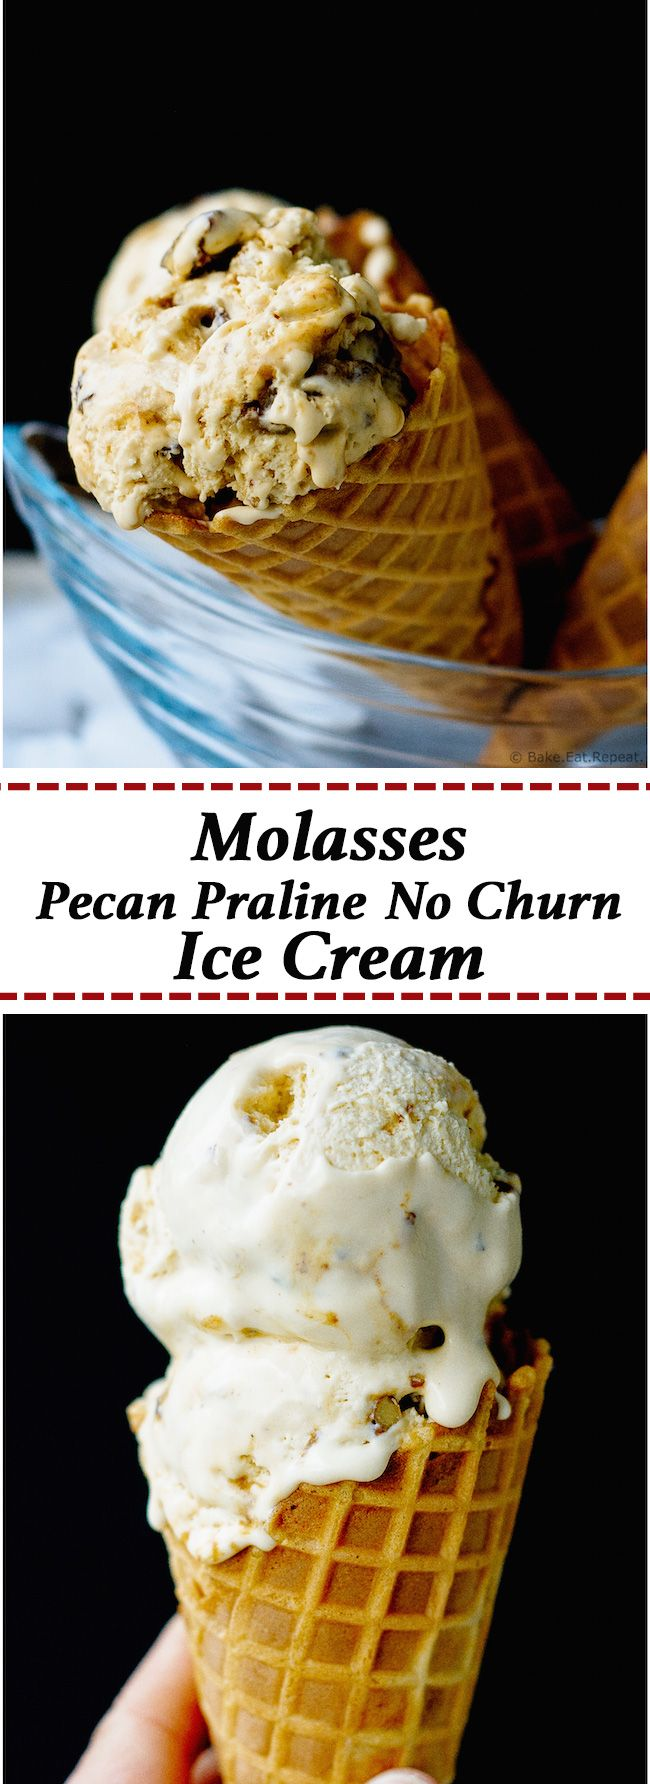 Molasses Pecan Praline Ice Cream - No churn molasses pecan praline ice cream that is super easy to make, and such a rich and creamy treat for a hot summer day!